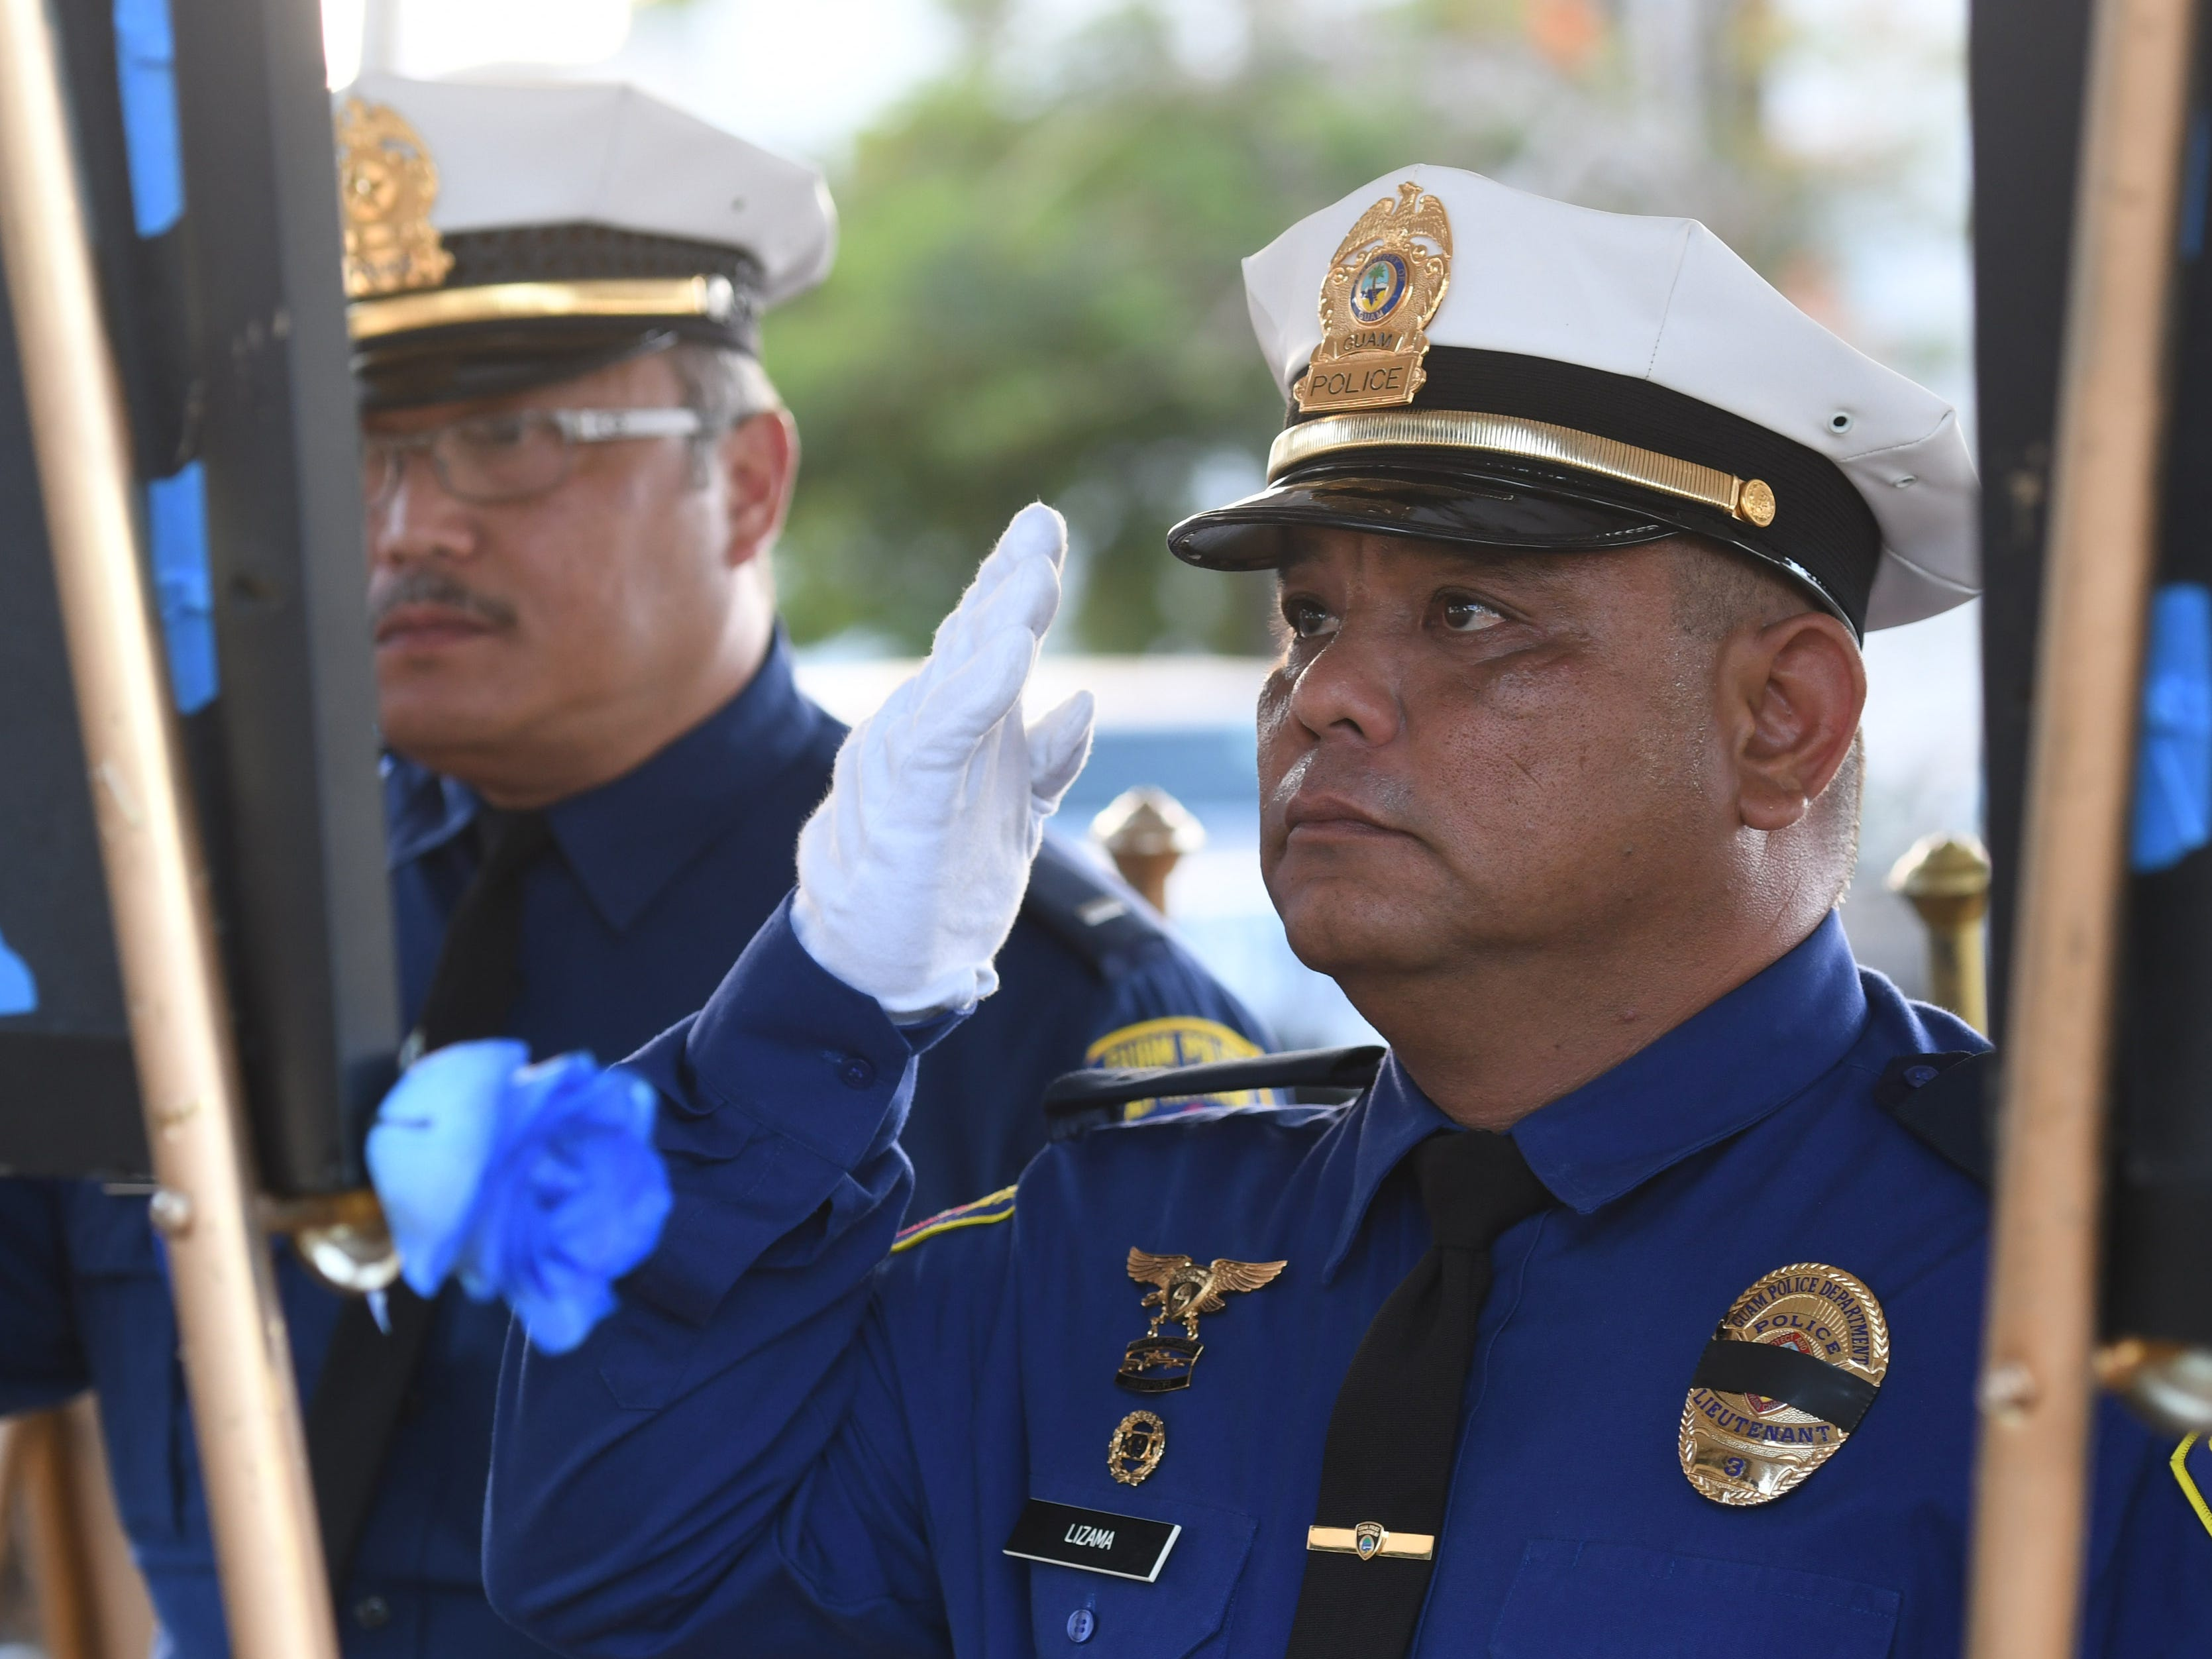 The service of Police Reserve Officer Helen Lizama is remembered during the Peace Officers' Memorial Service and Wreath Laying Ceremony held at the Guam Police Department's Badge Memorial Park in Hagåtña on Wednesday, May 15, 2019.